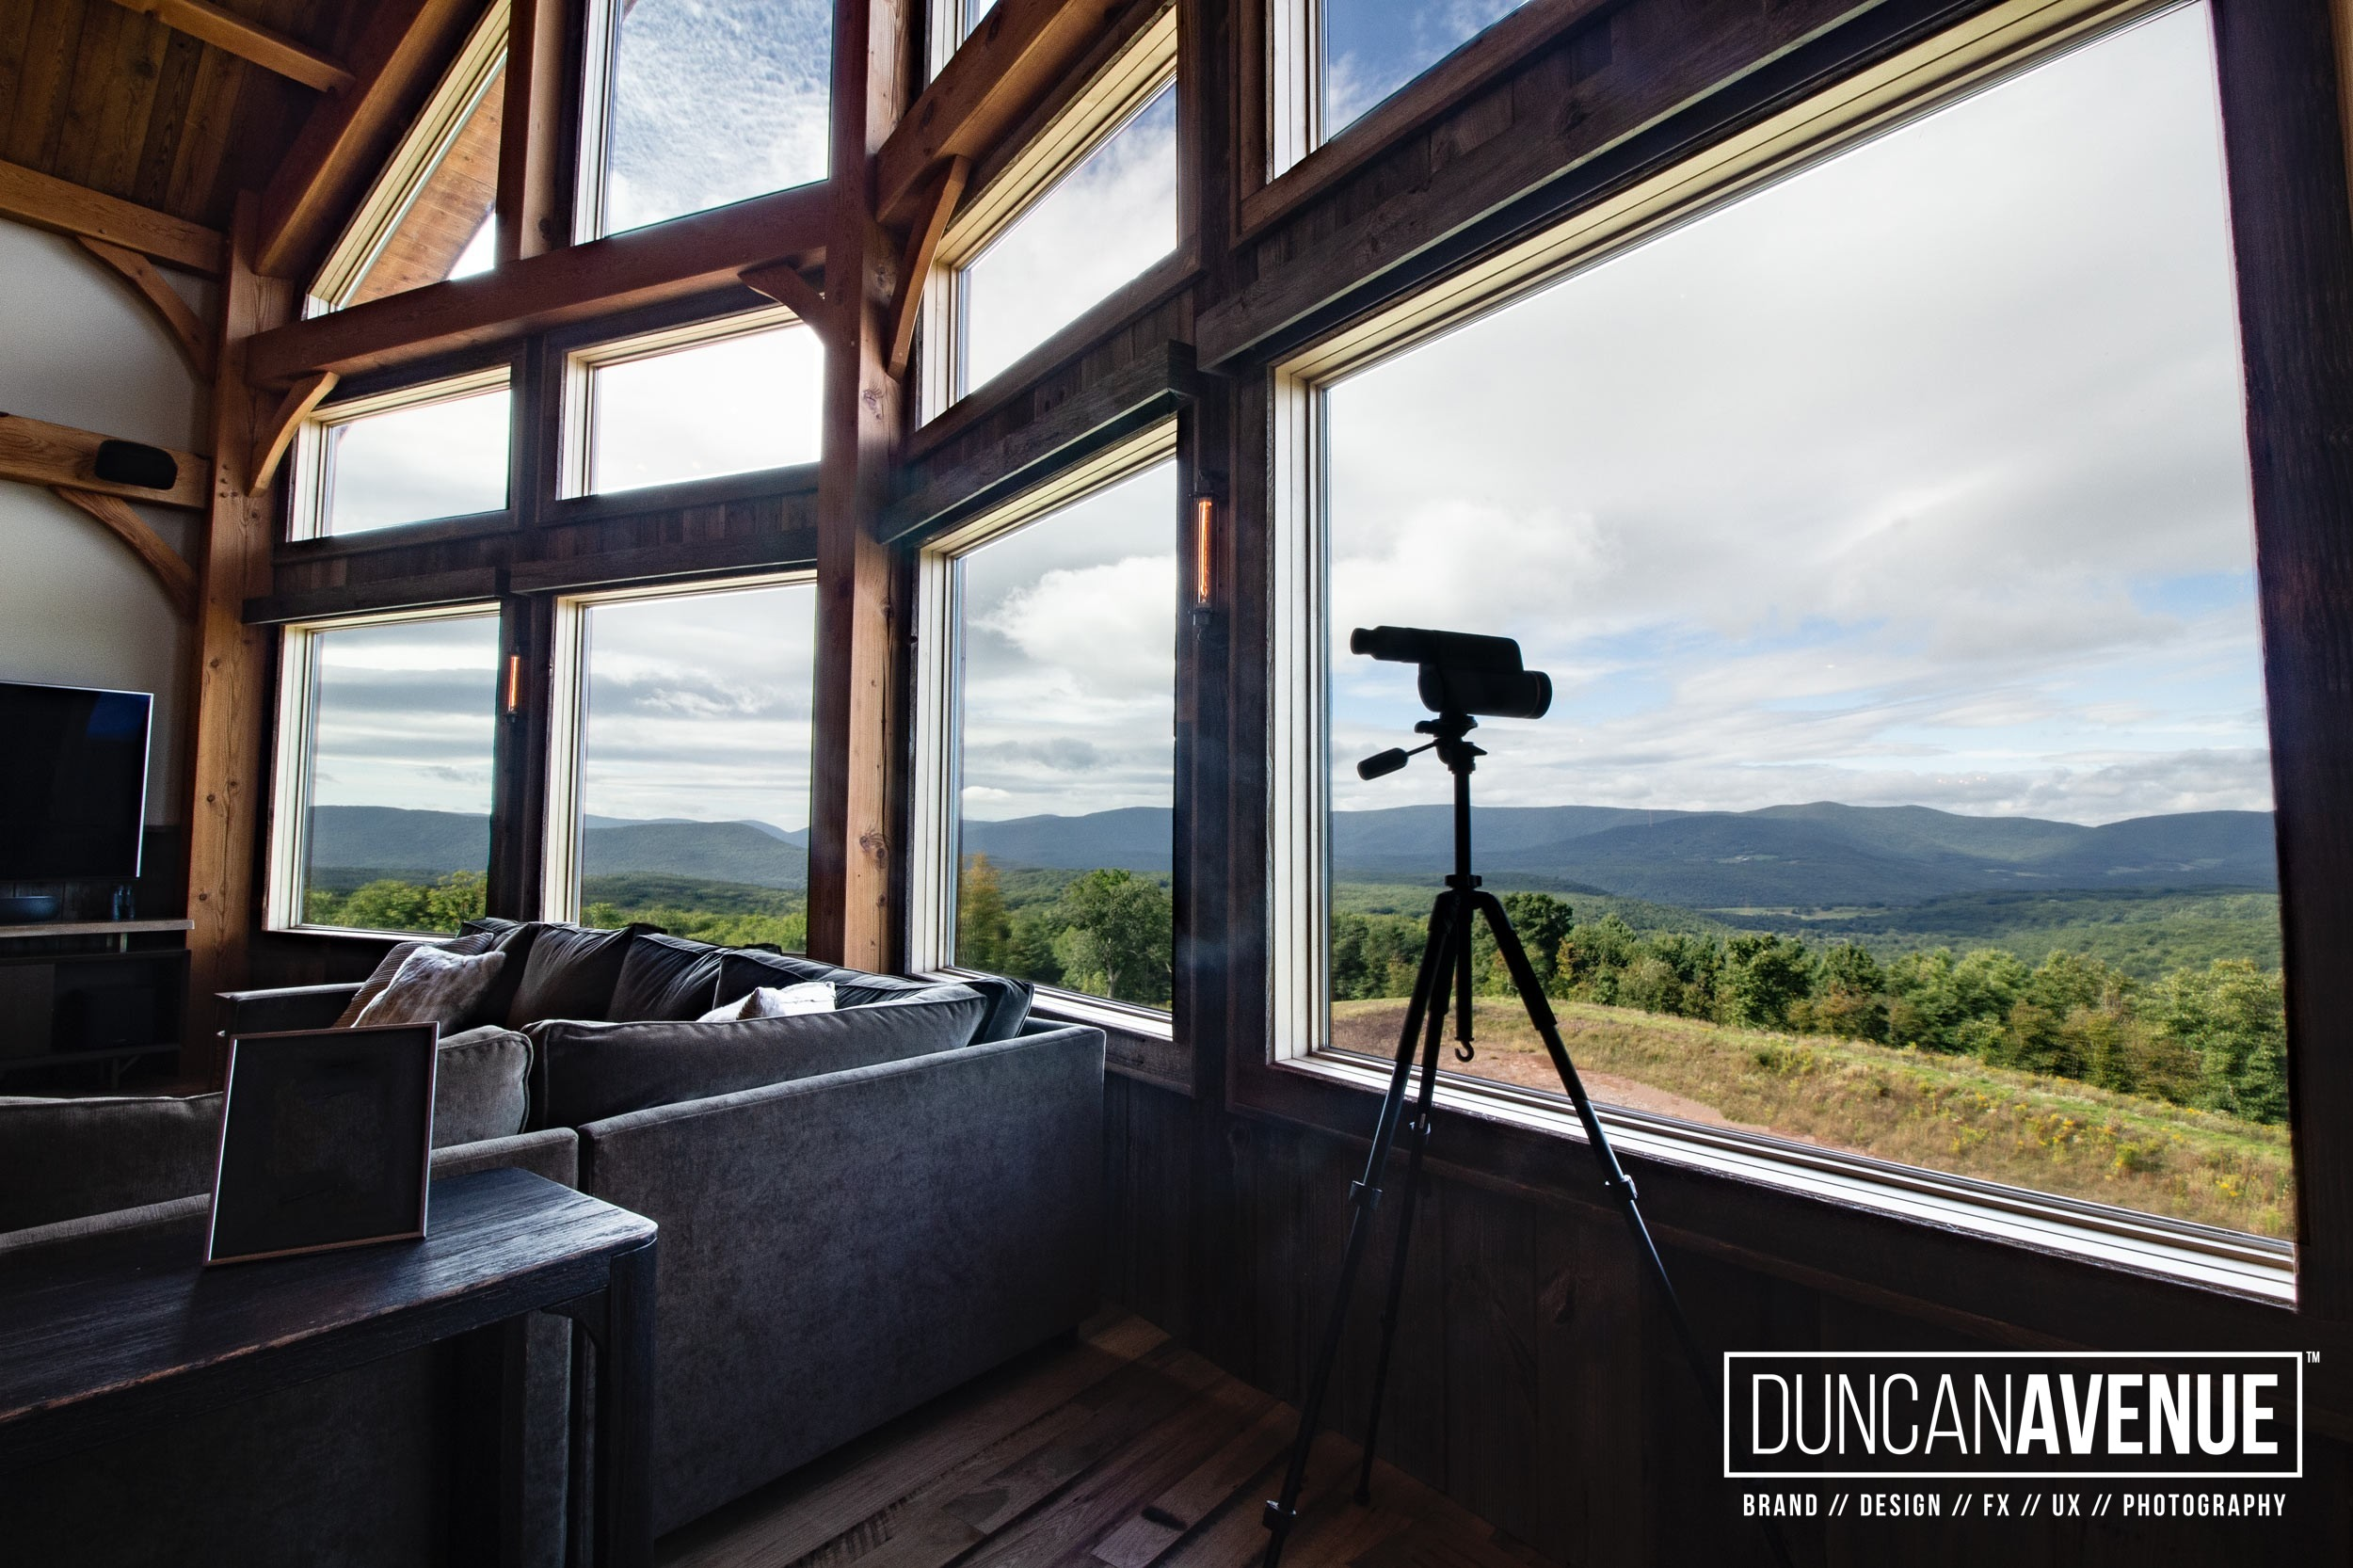 8 Great DIY Tips for Shooting Your Own Real Estate Photos by Maxwell Alexander (Duncan Avenue Real Estate Photography Studio)